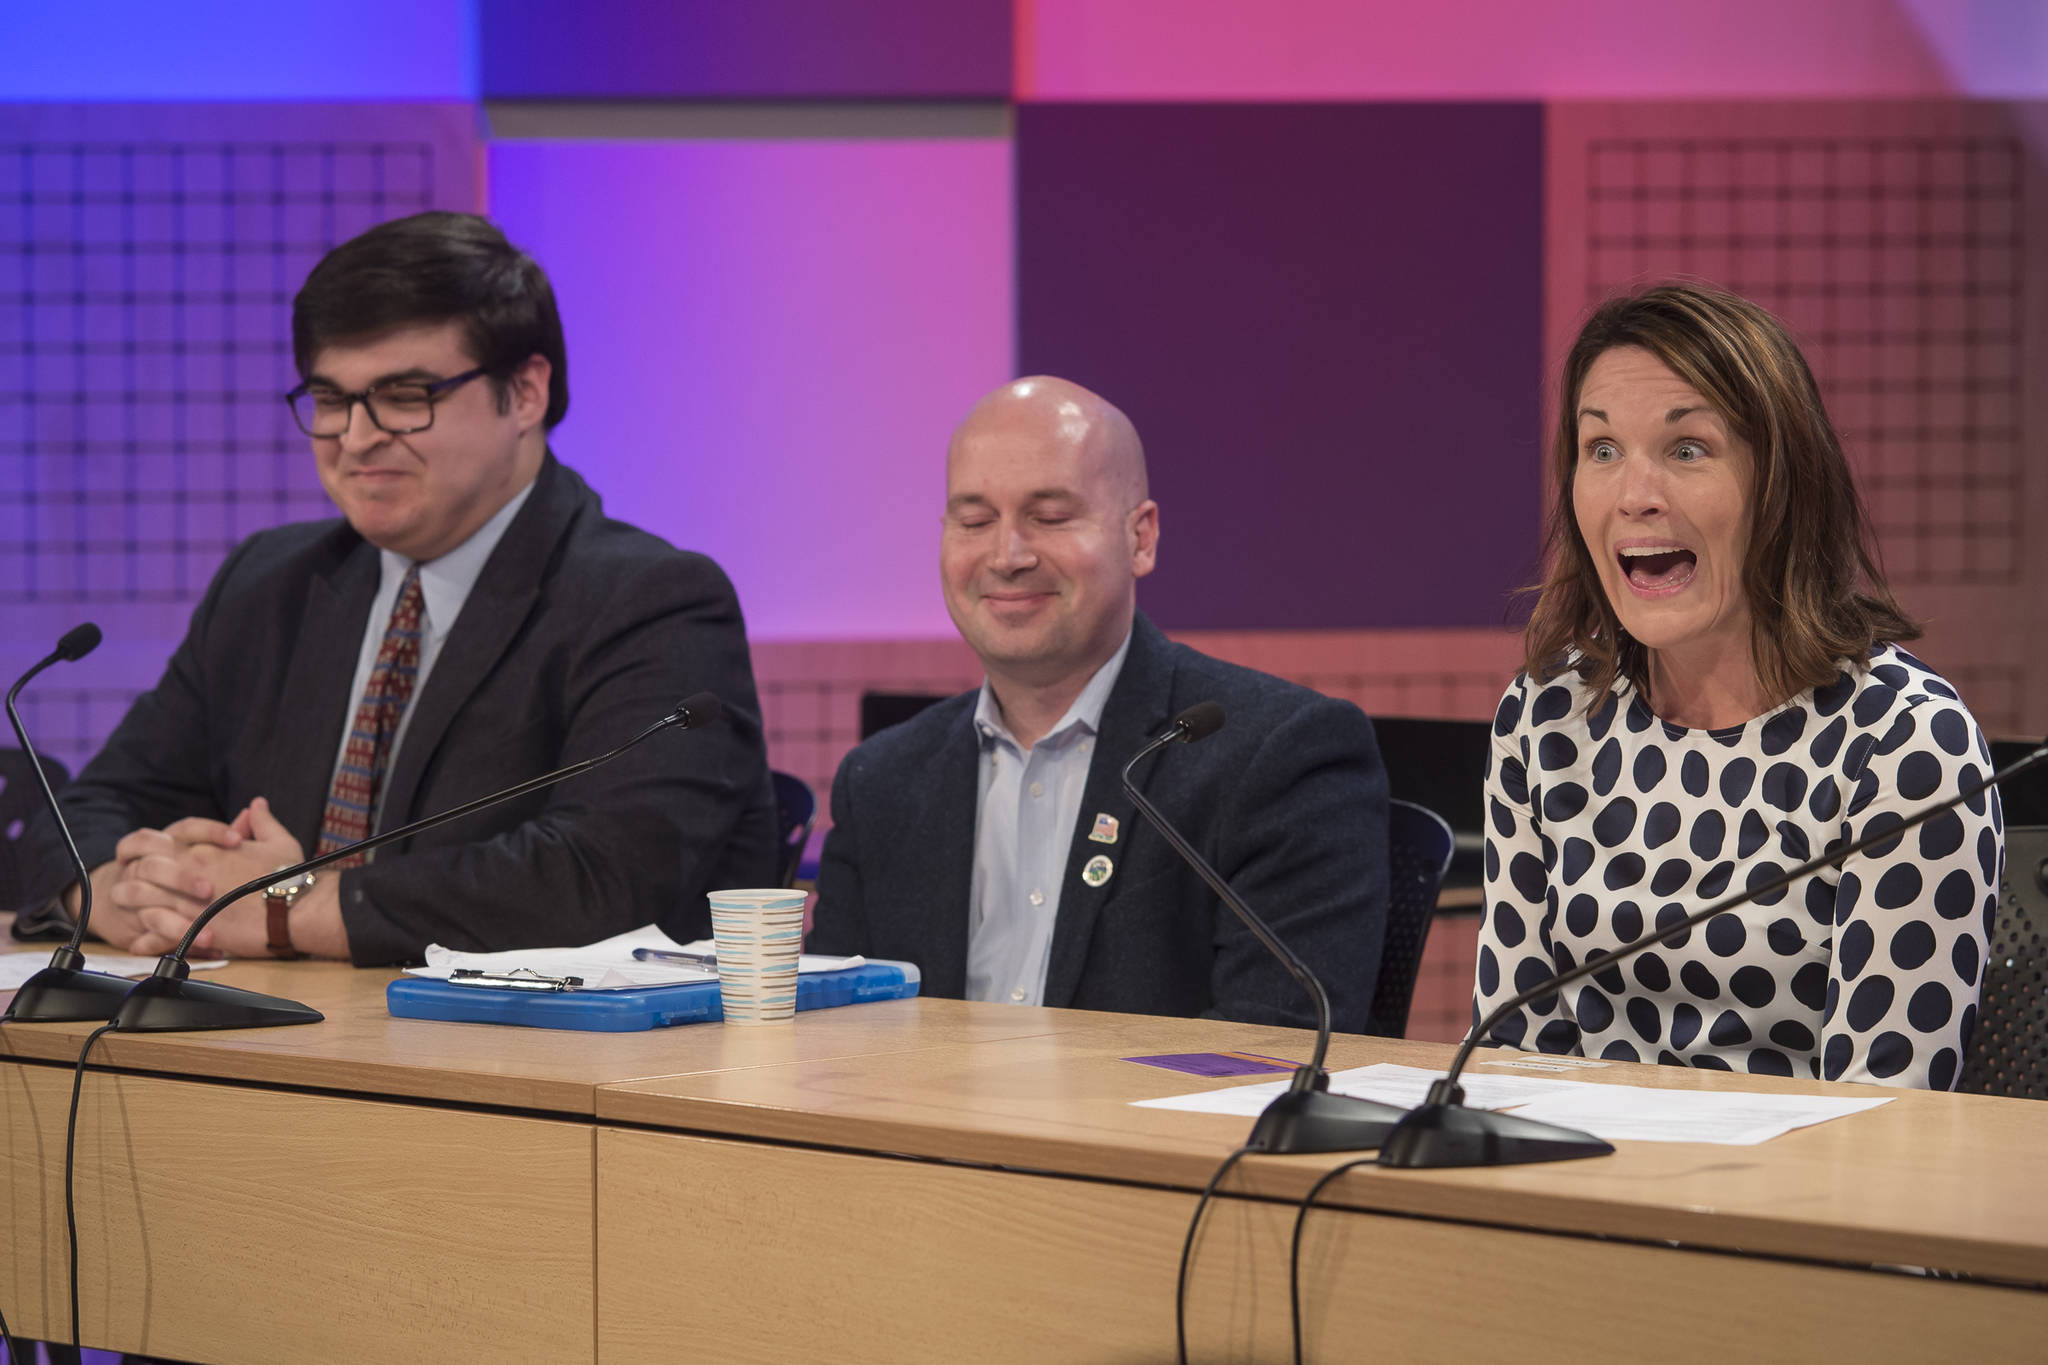 Juneau School Board candidate Elizabeth Siddon reacts to the timer's bell as she answers questions with Kevin Allen, left, Paul Kelly, center, during a candidate forum by the League of Women Voters at KTOO on Thursday, Sept. 20, 2018. (Michael Penn | Juneau Empire)